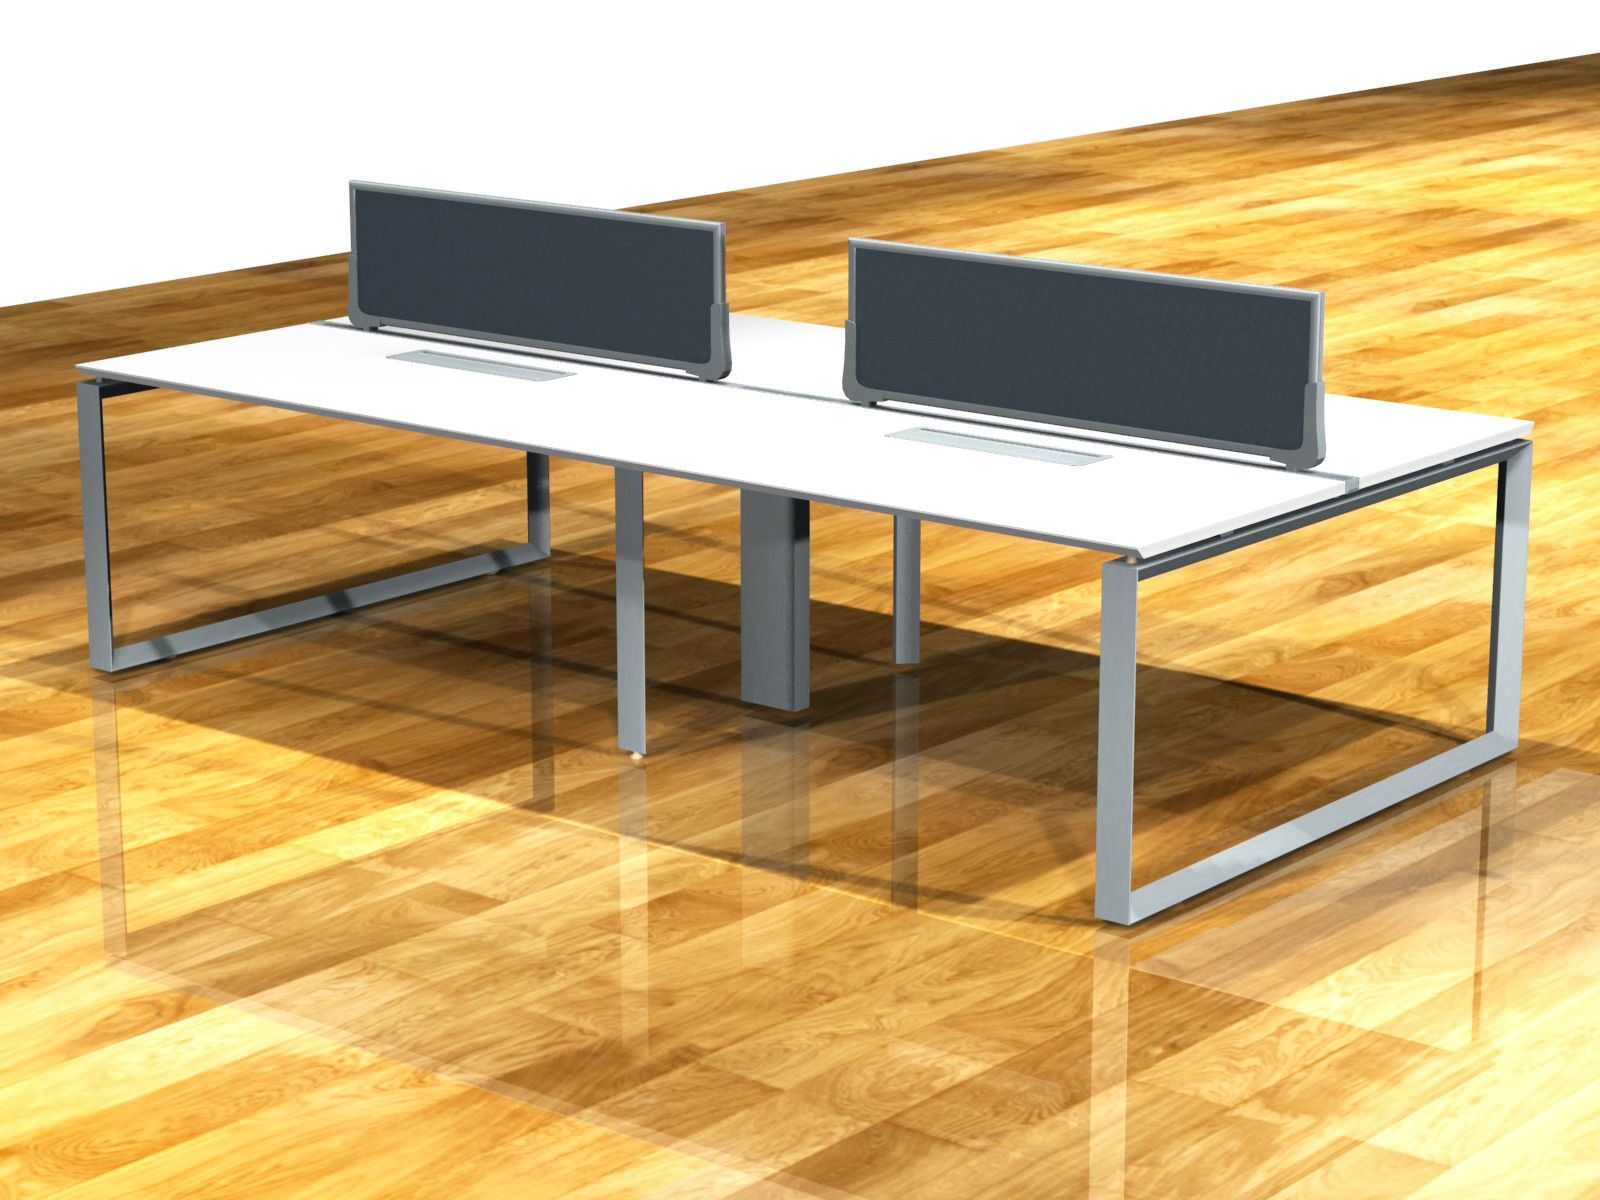 A versatile office system designed to enhance open spaces through